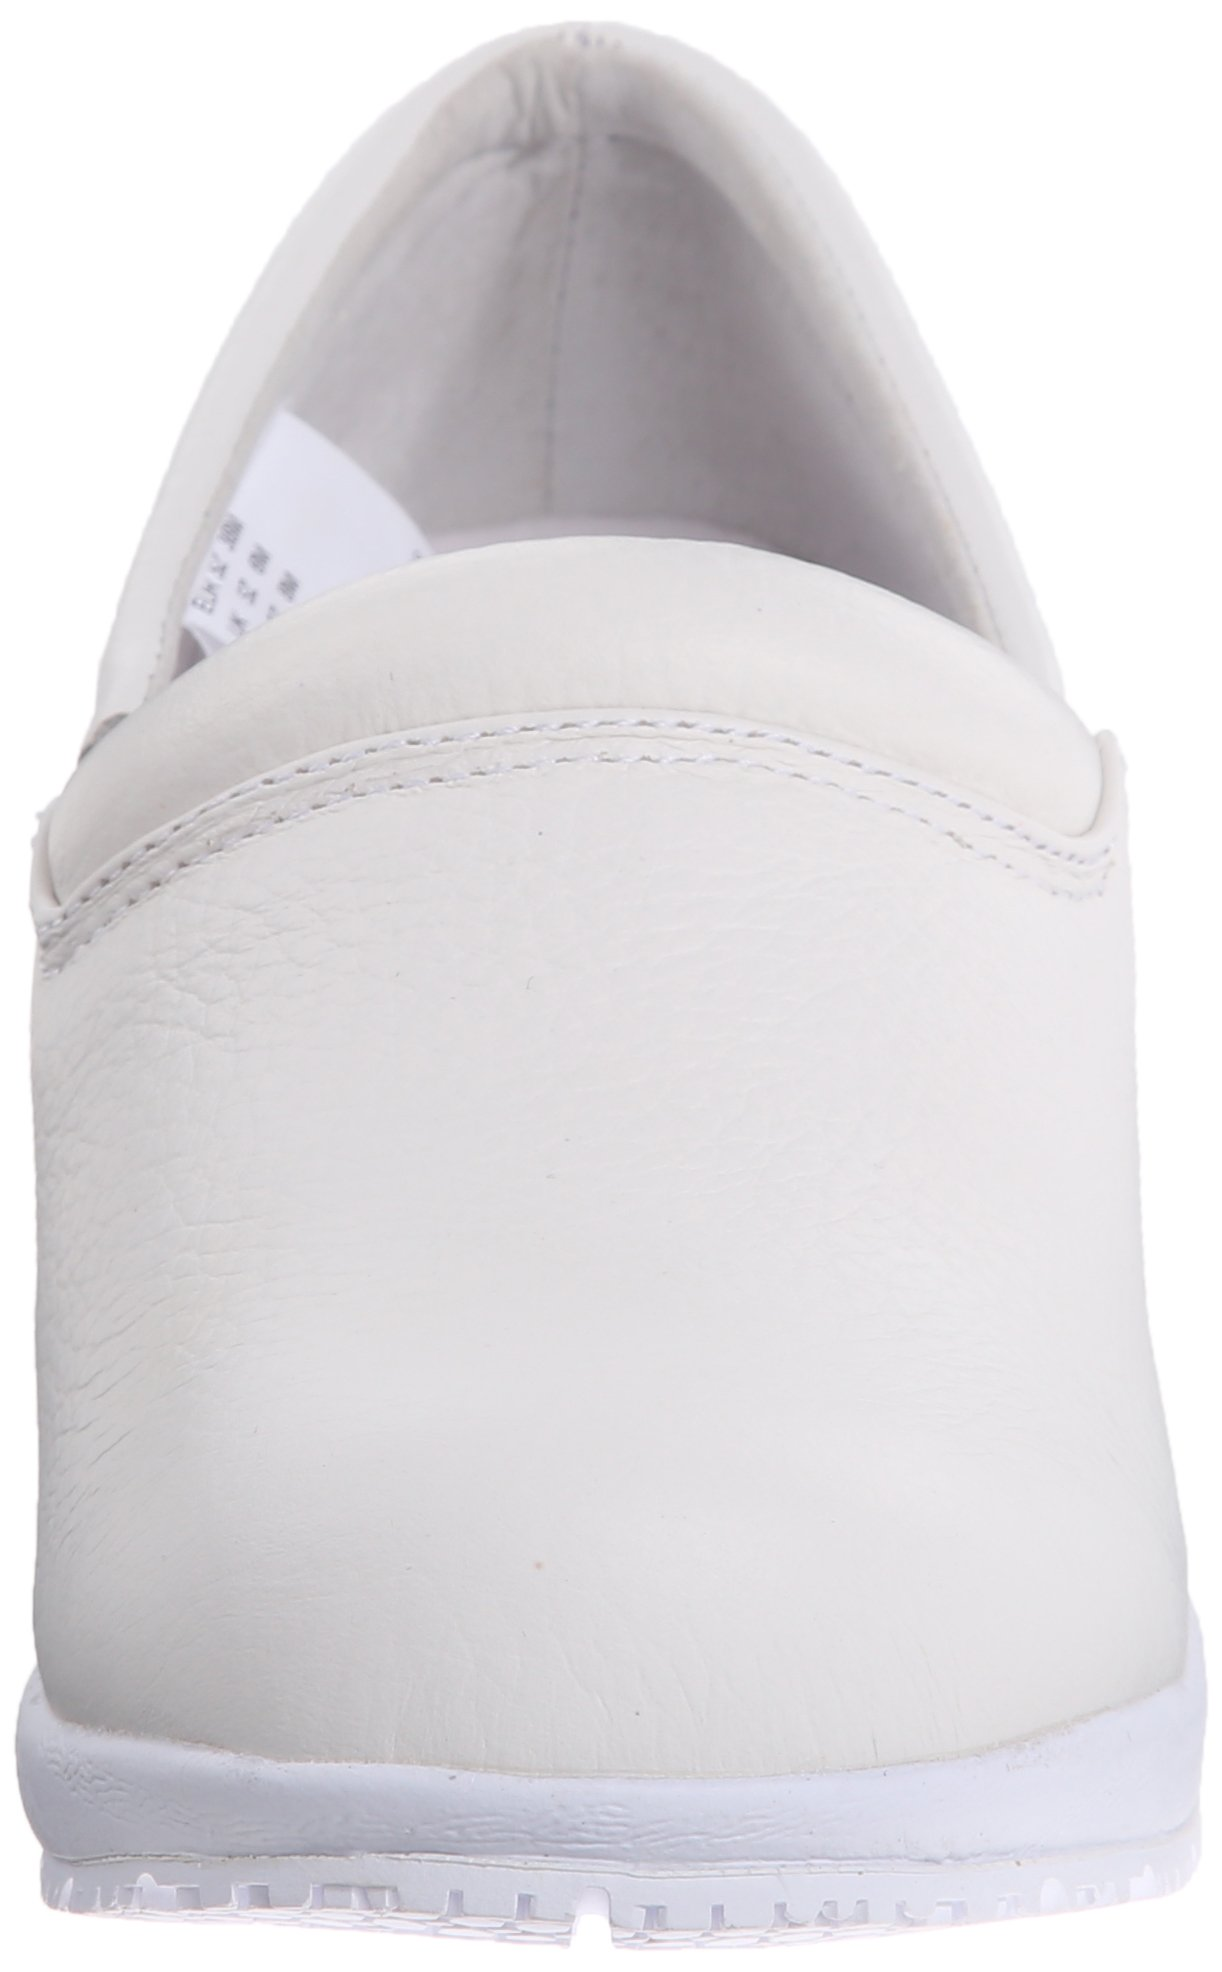 Cherokee Women's Patricia Work Shoe, White, 8 M US by Cherokee (Image #4)